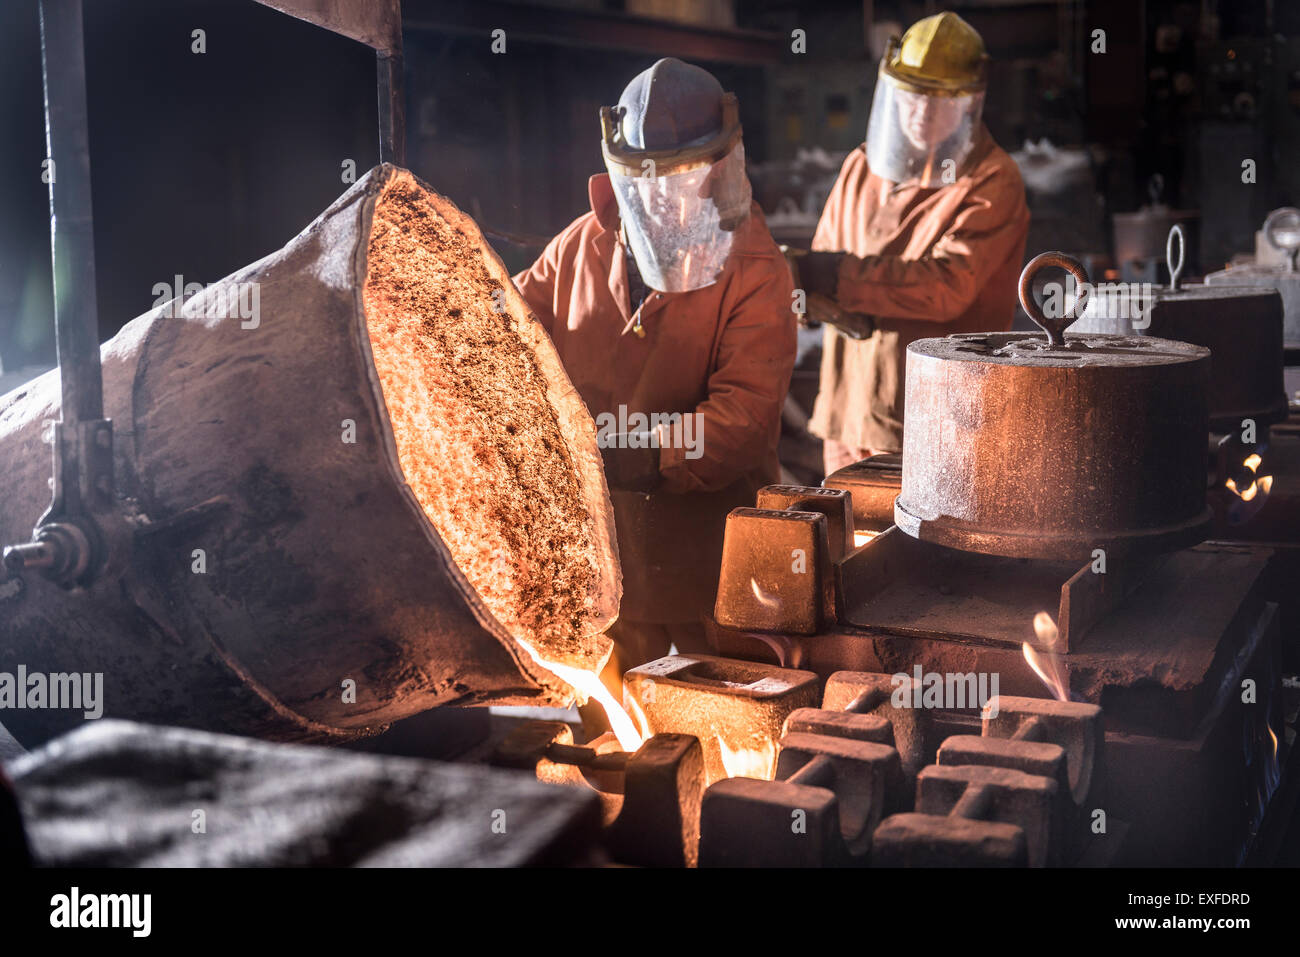 Workers pouring molten metal from flasks into moulds in foundry - Stock Image